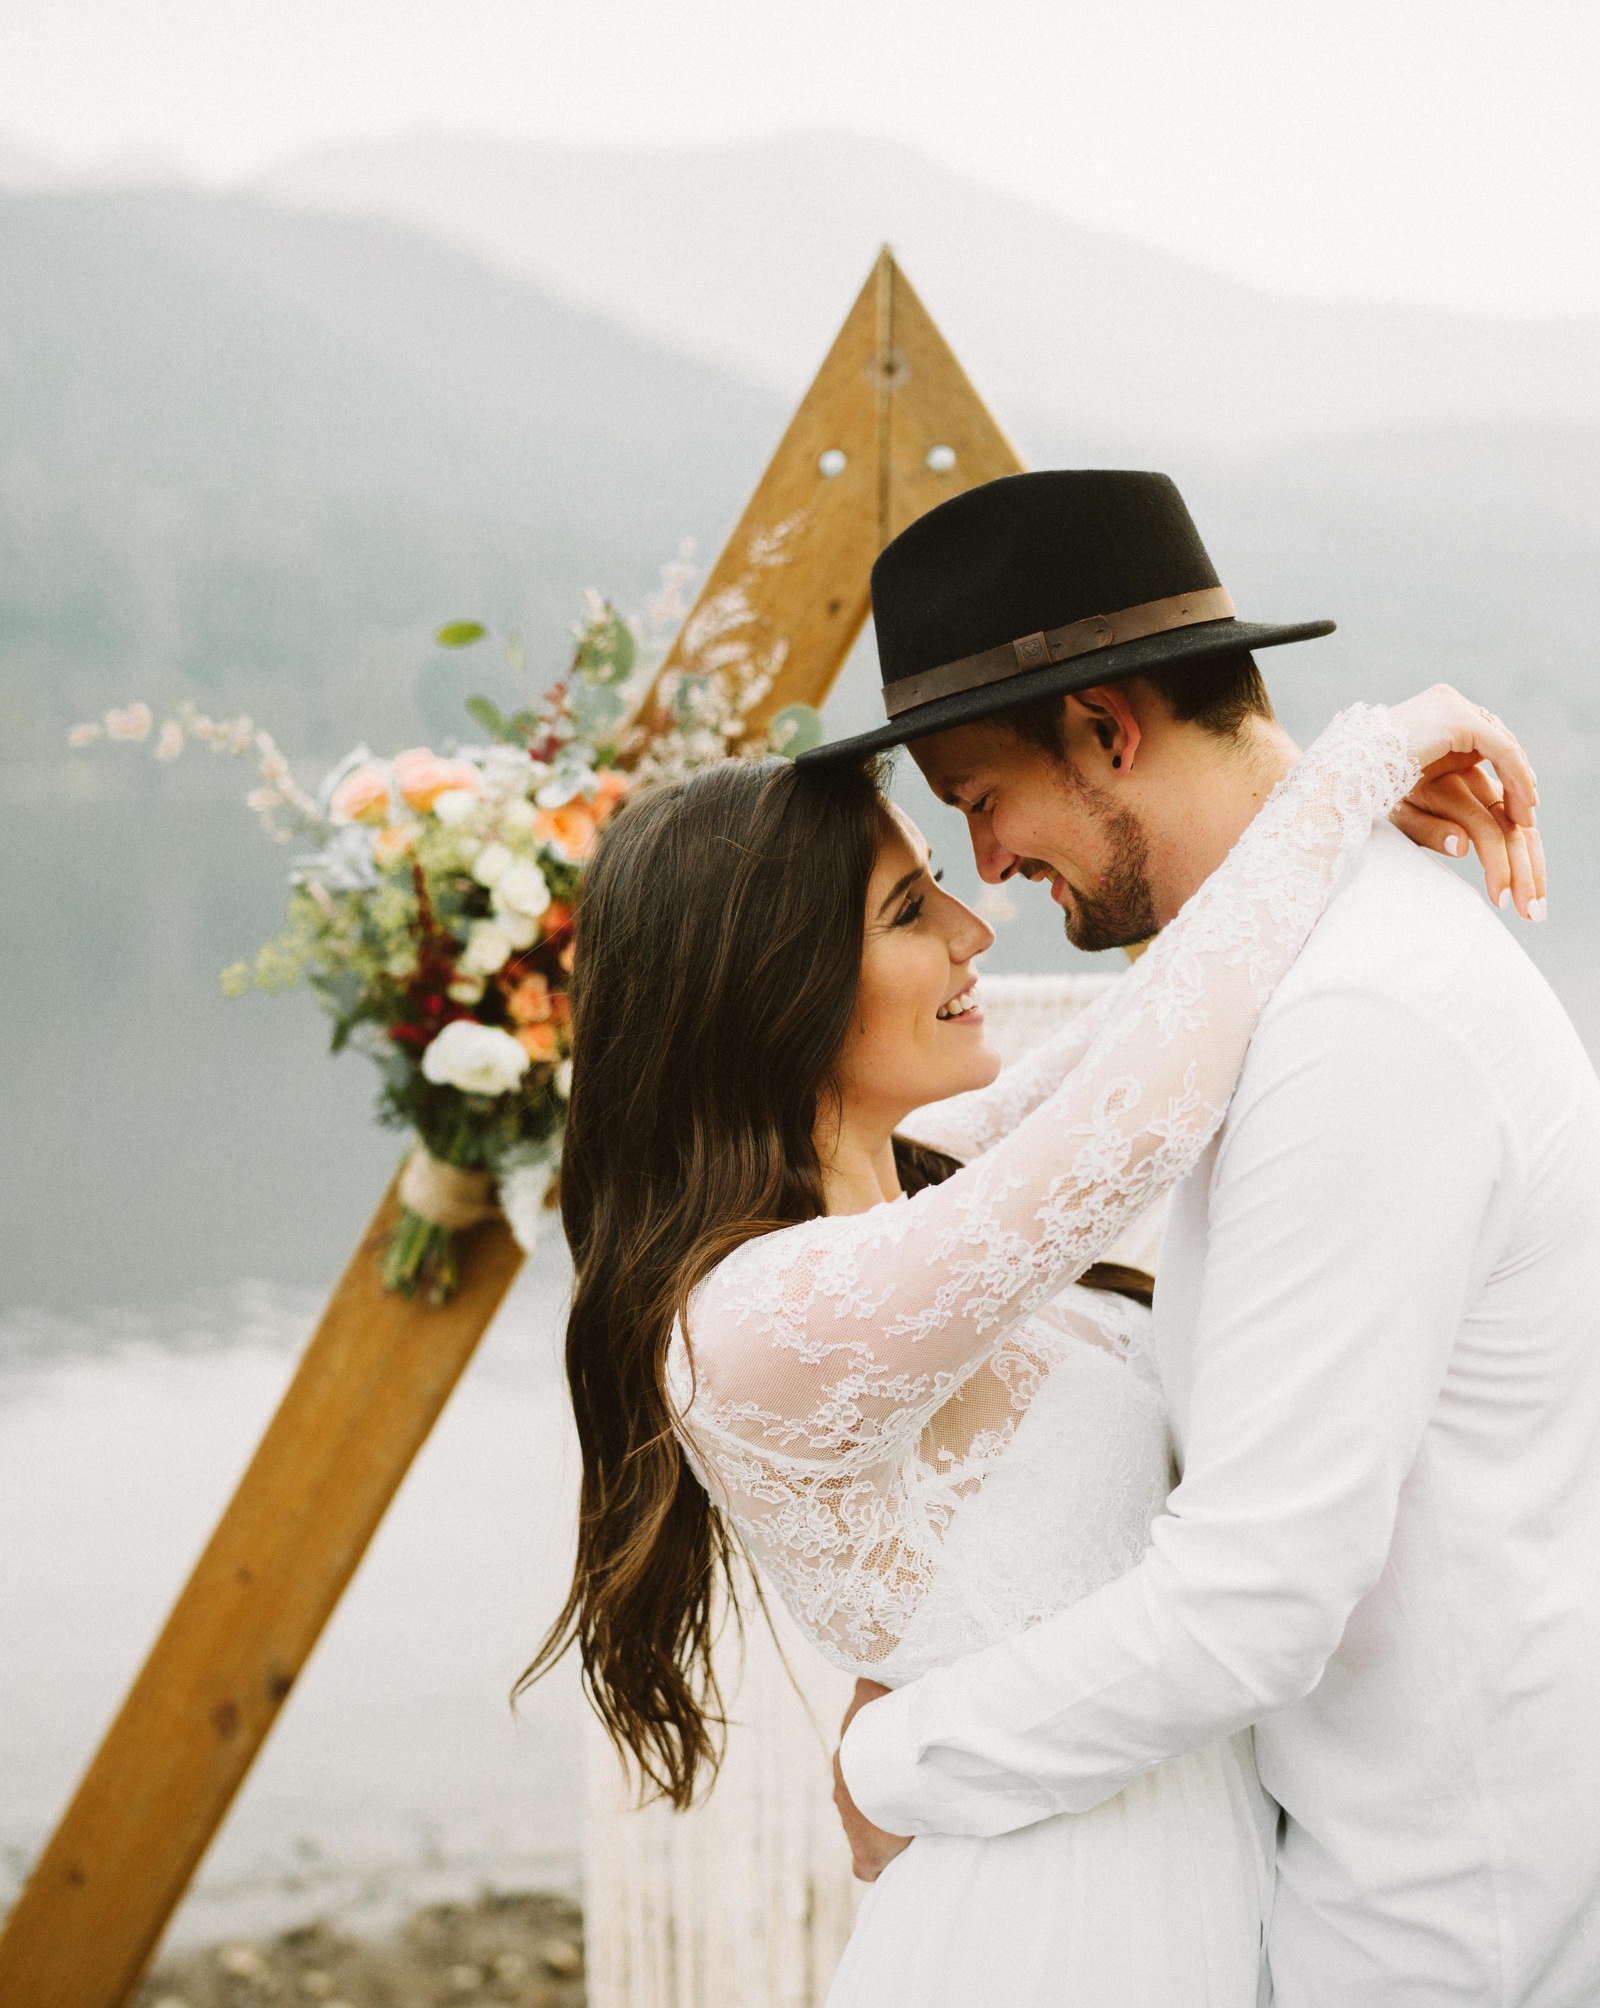 athena-and-camron-seattle-elopement-wedding-benj-haisch-rattlesnake-lake-christian-couple-goals66